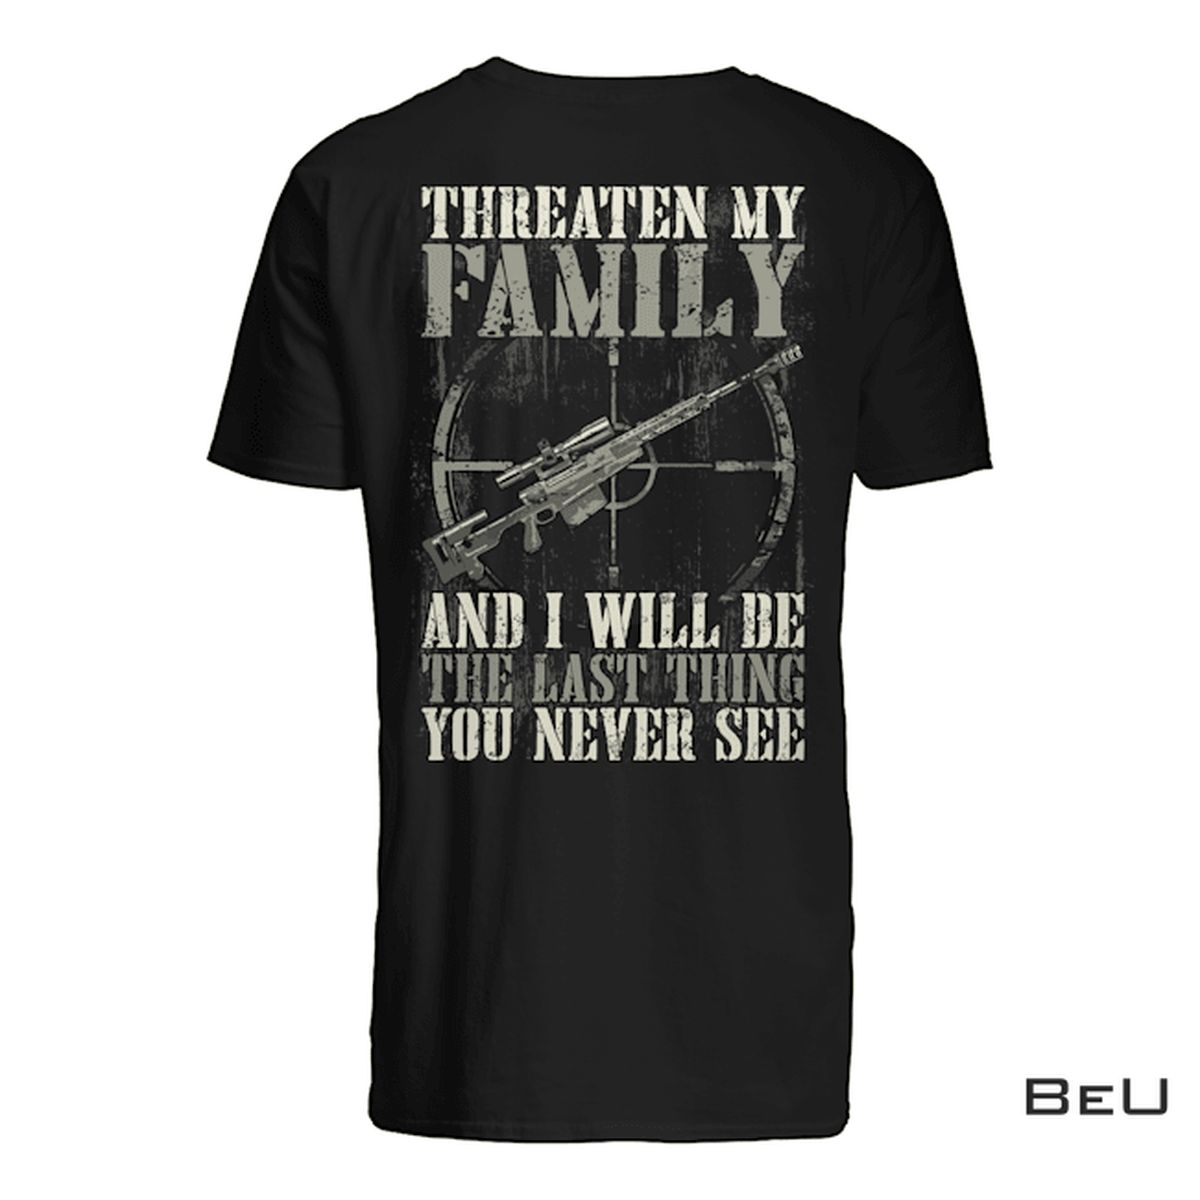 Threaten My Family And I'll Be The Last Thing You Never See Shirt, hoodie, tank top